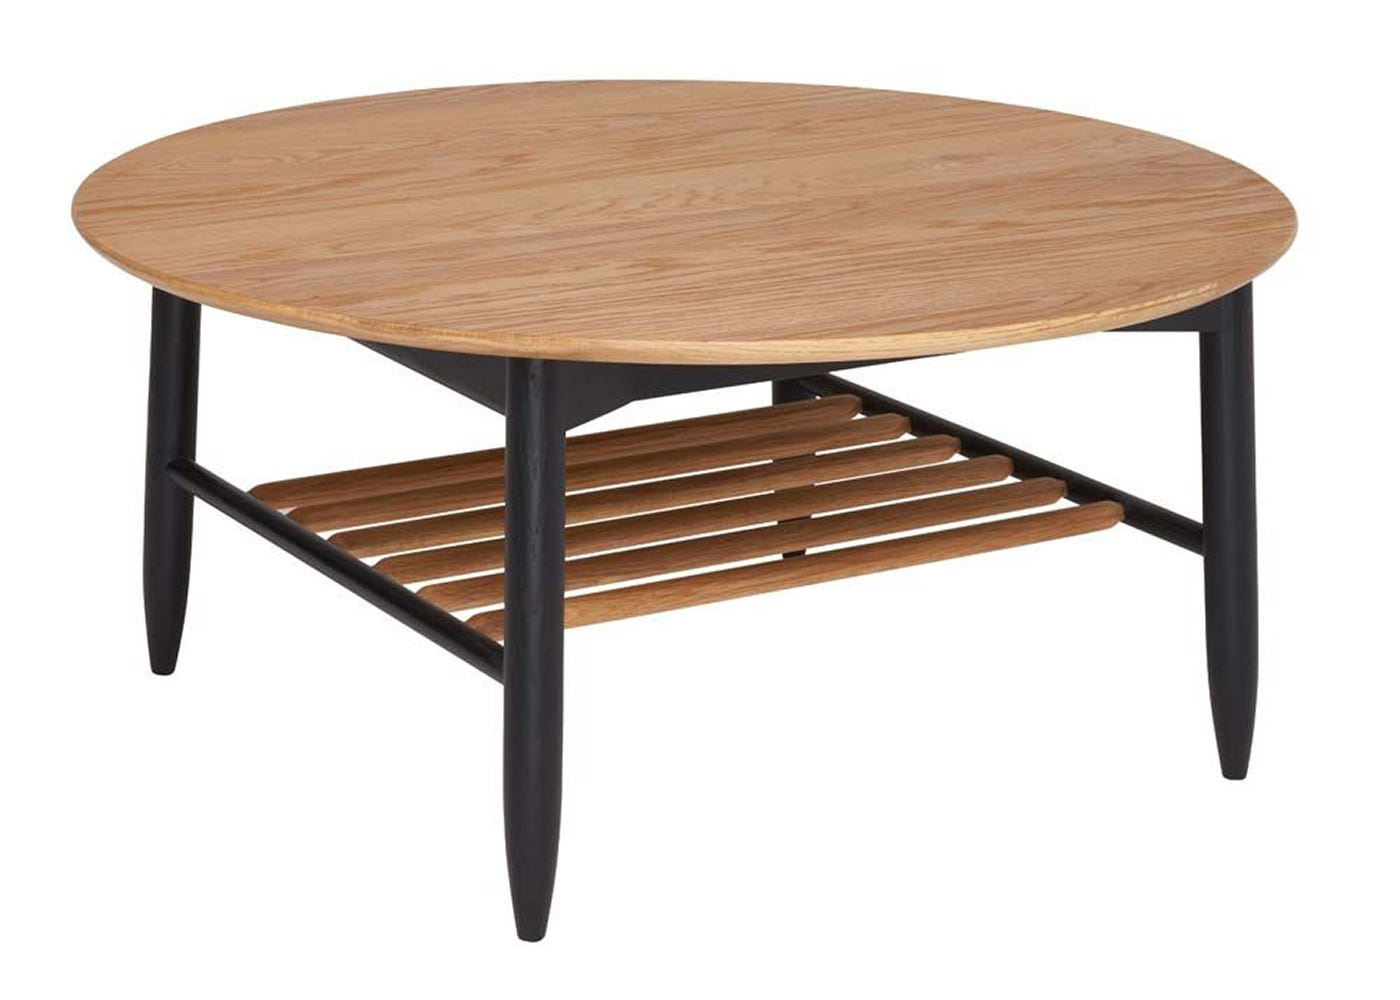 Monza Round Coffee Table - Angle View